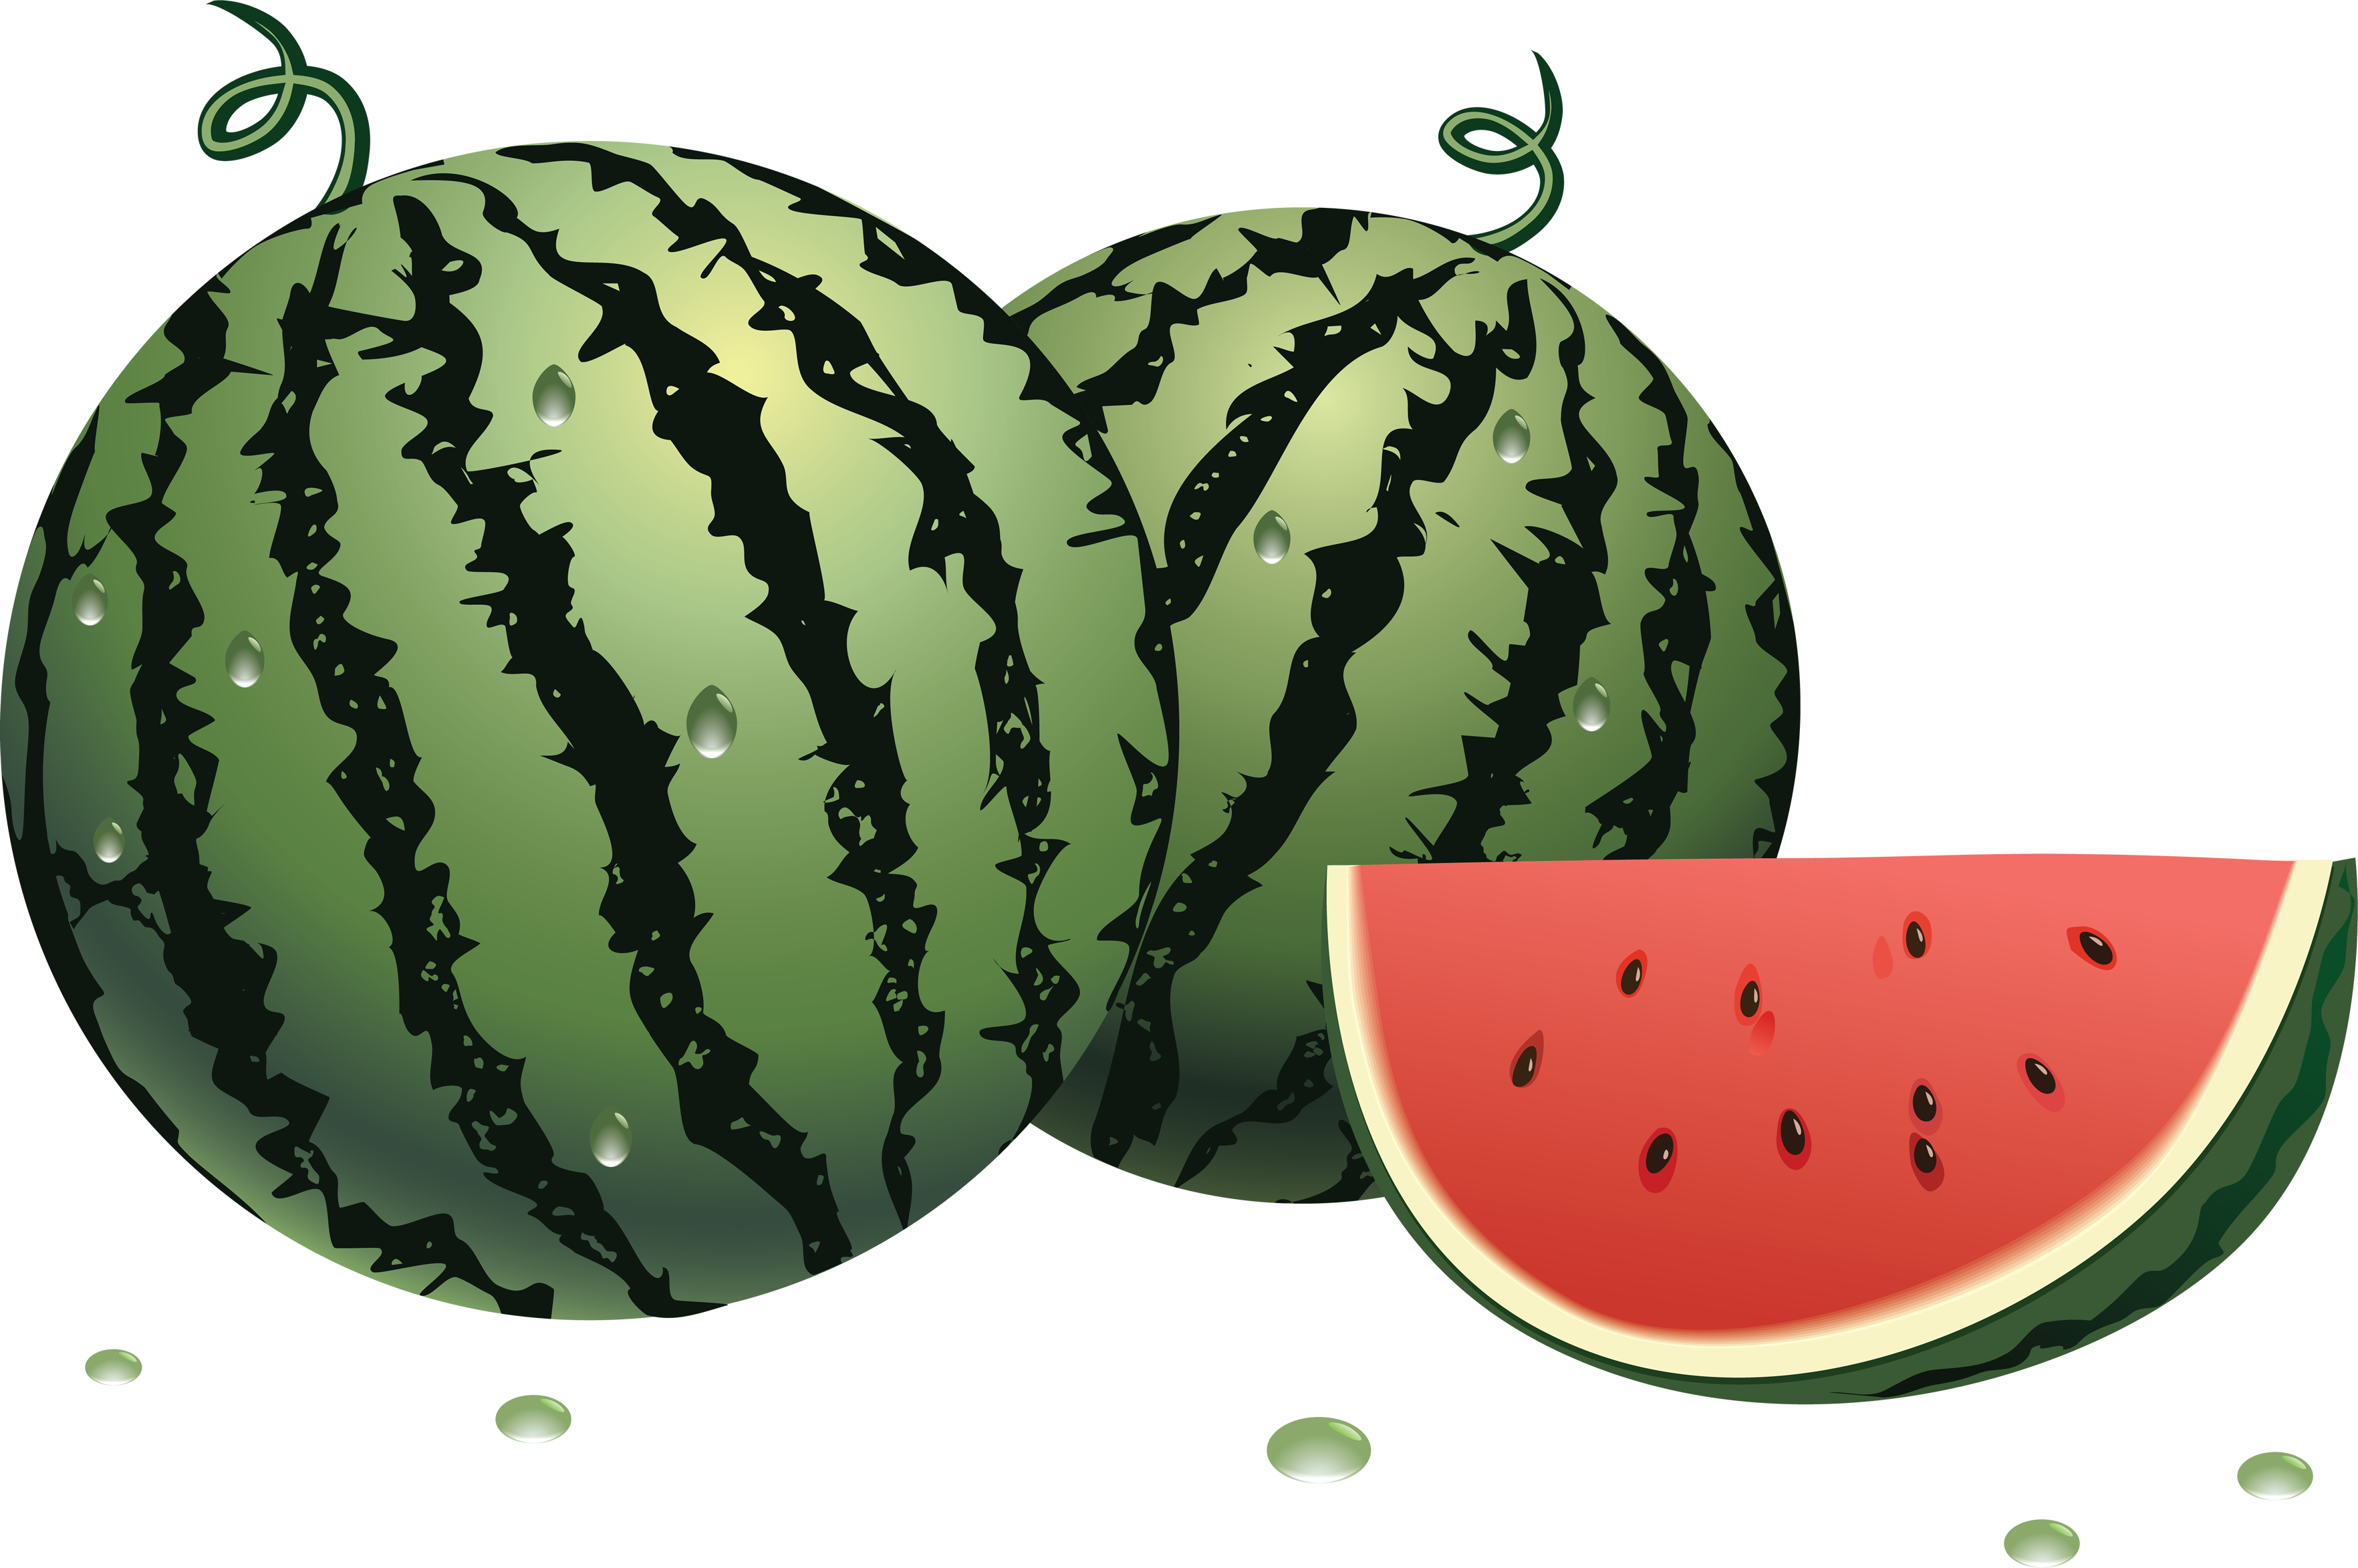 Watermelon png images, free download.